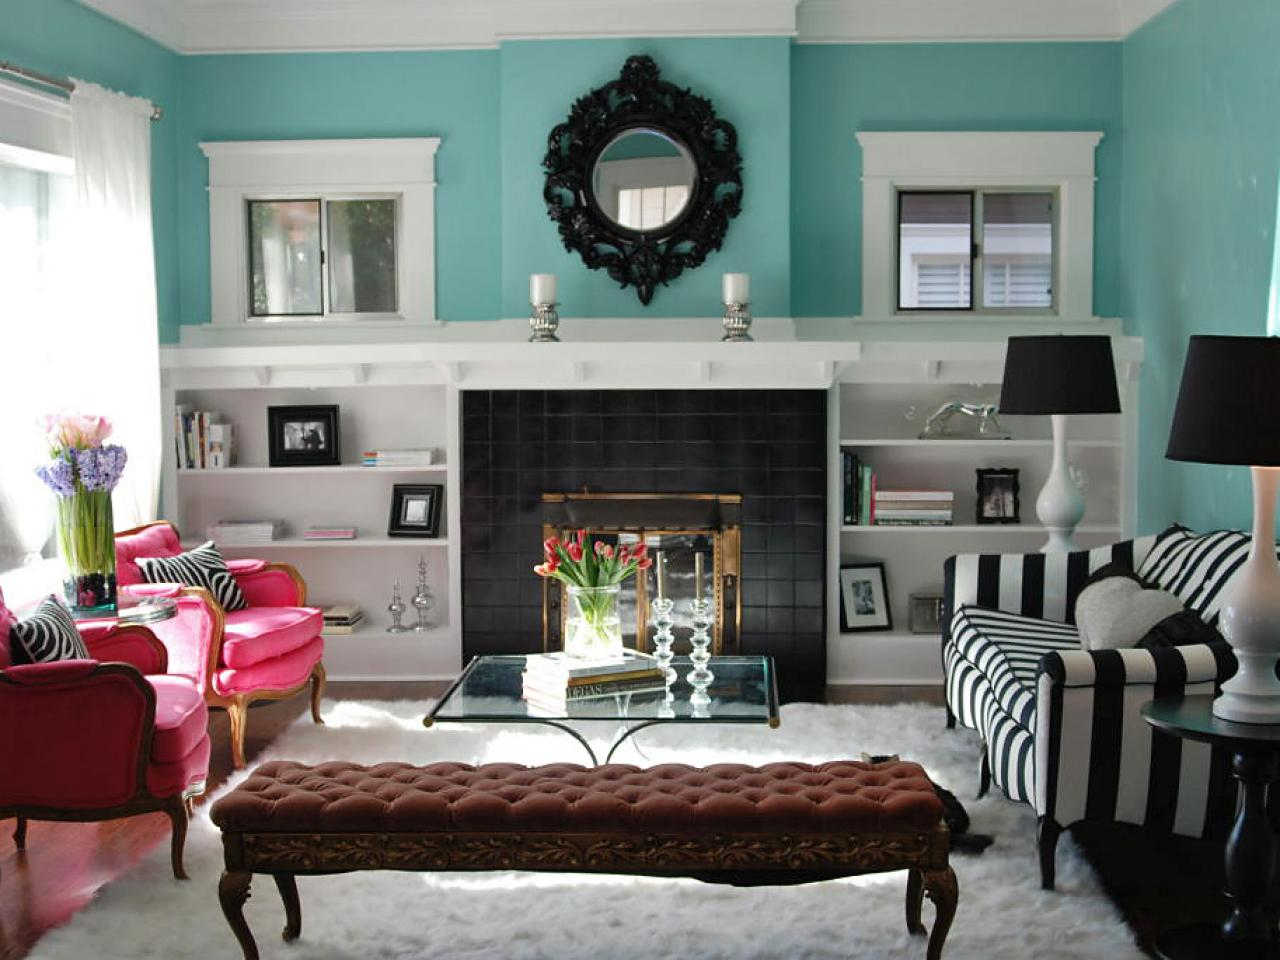 How To Build Bookshelves Around A Fireplace